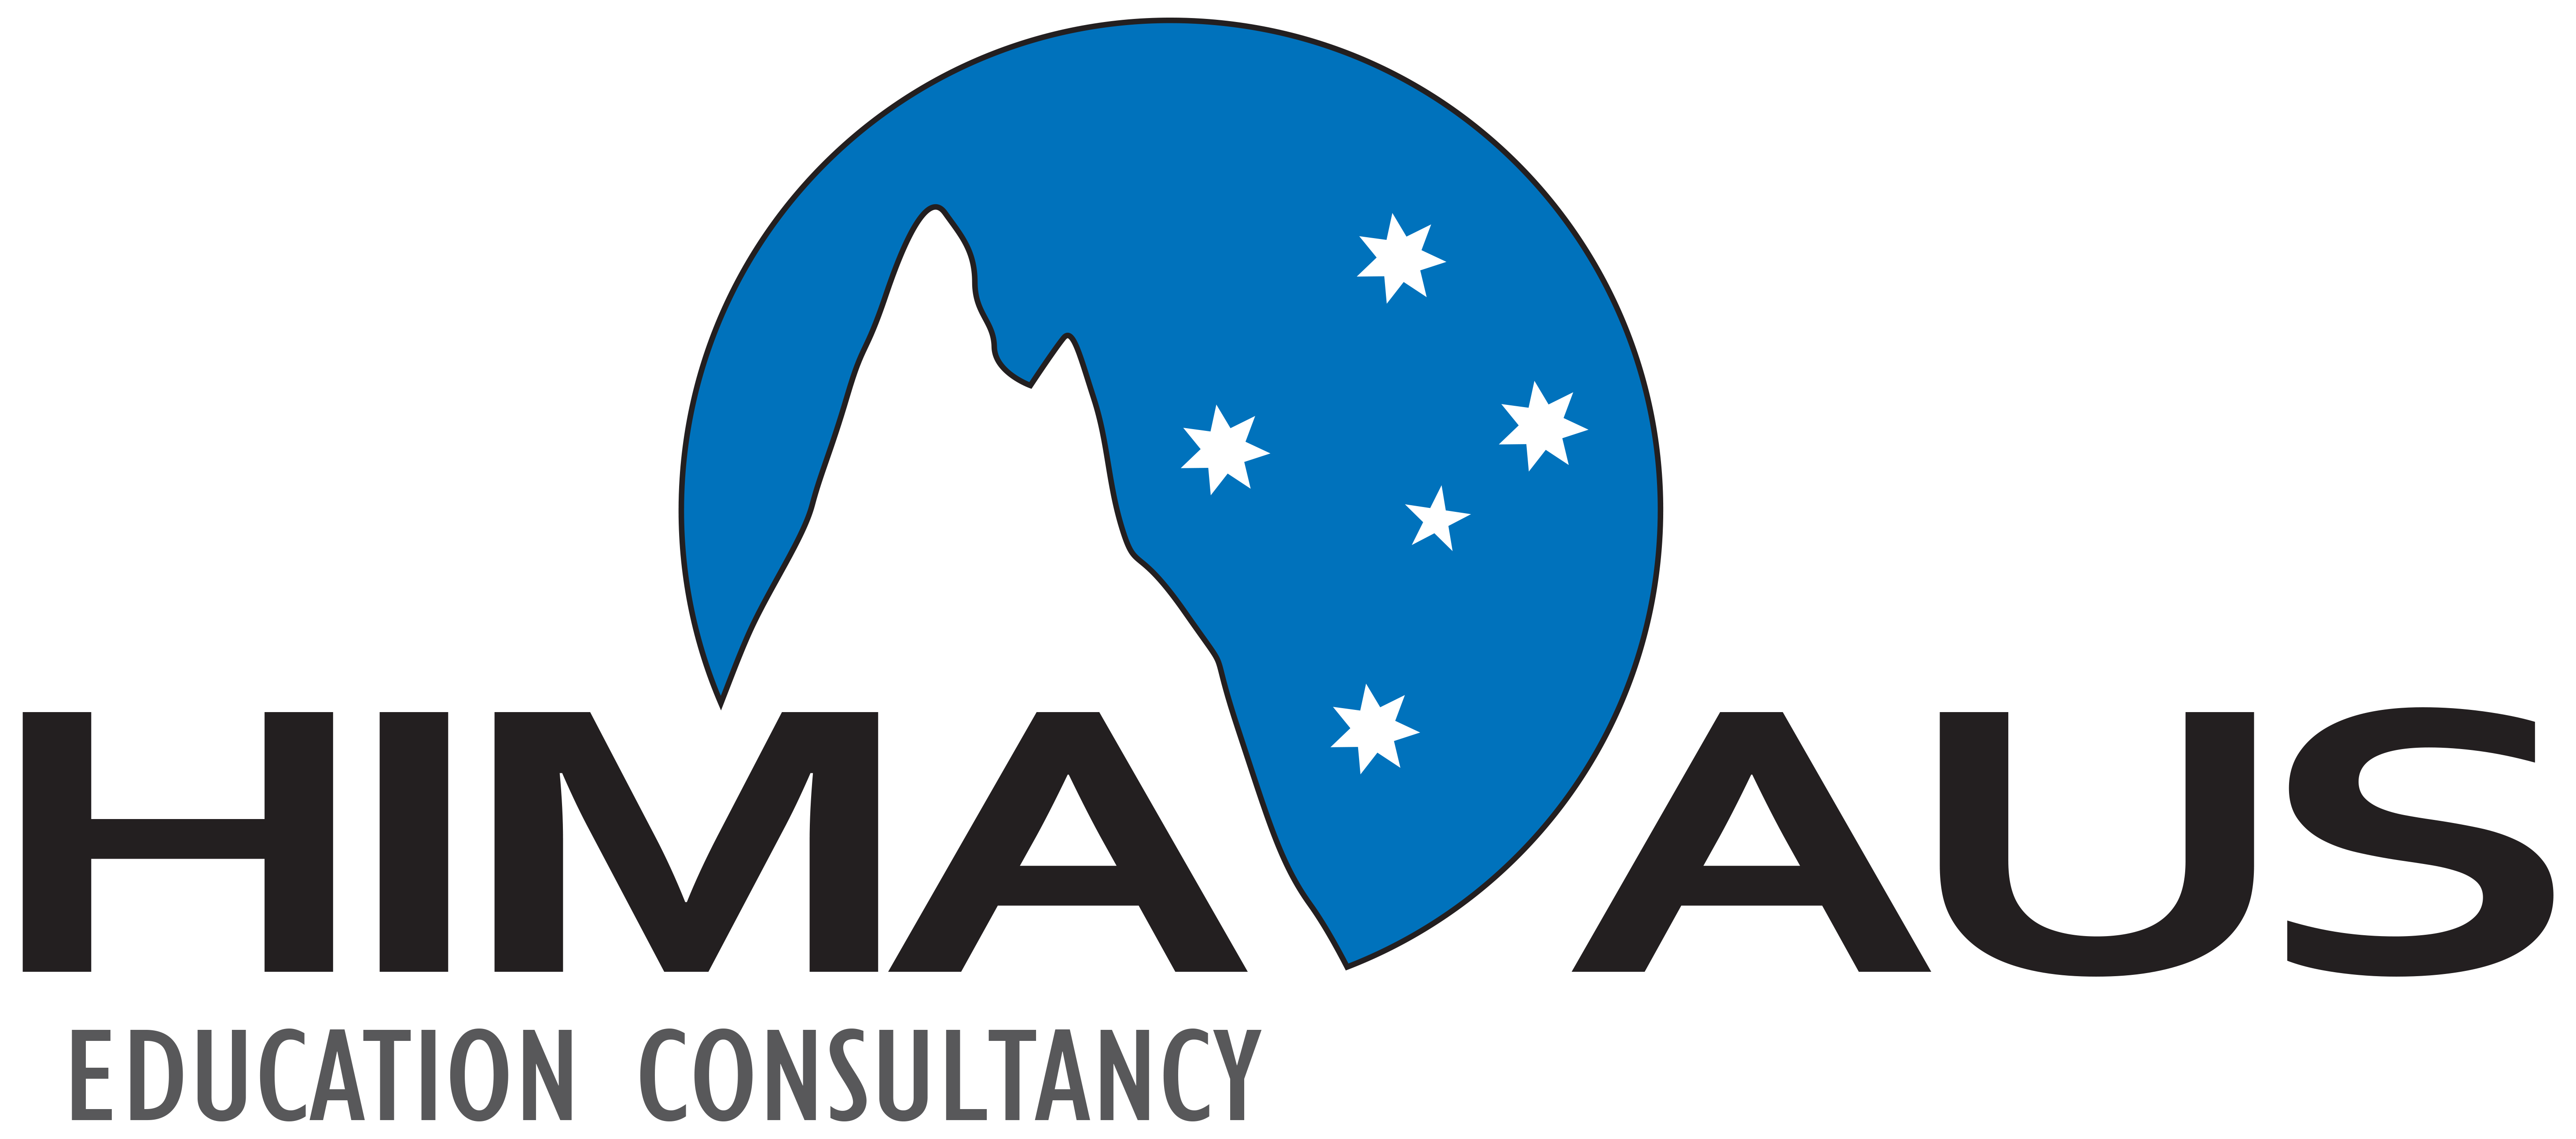 himaaus final logo